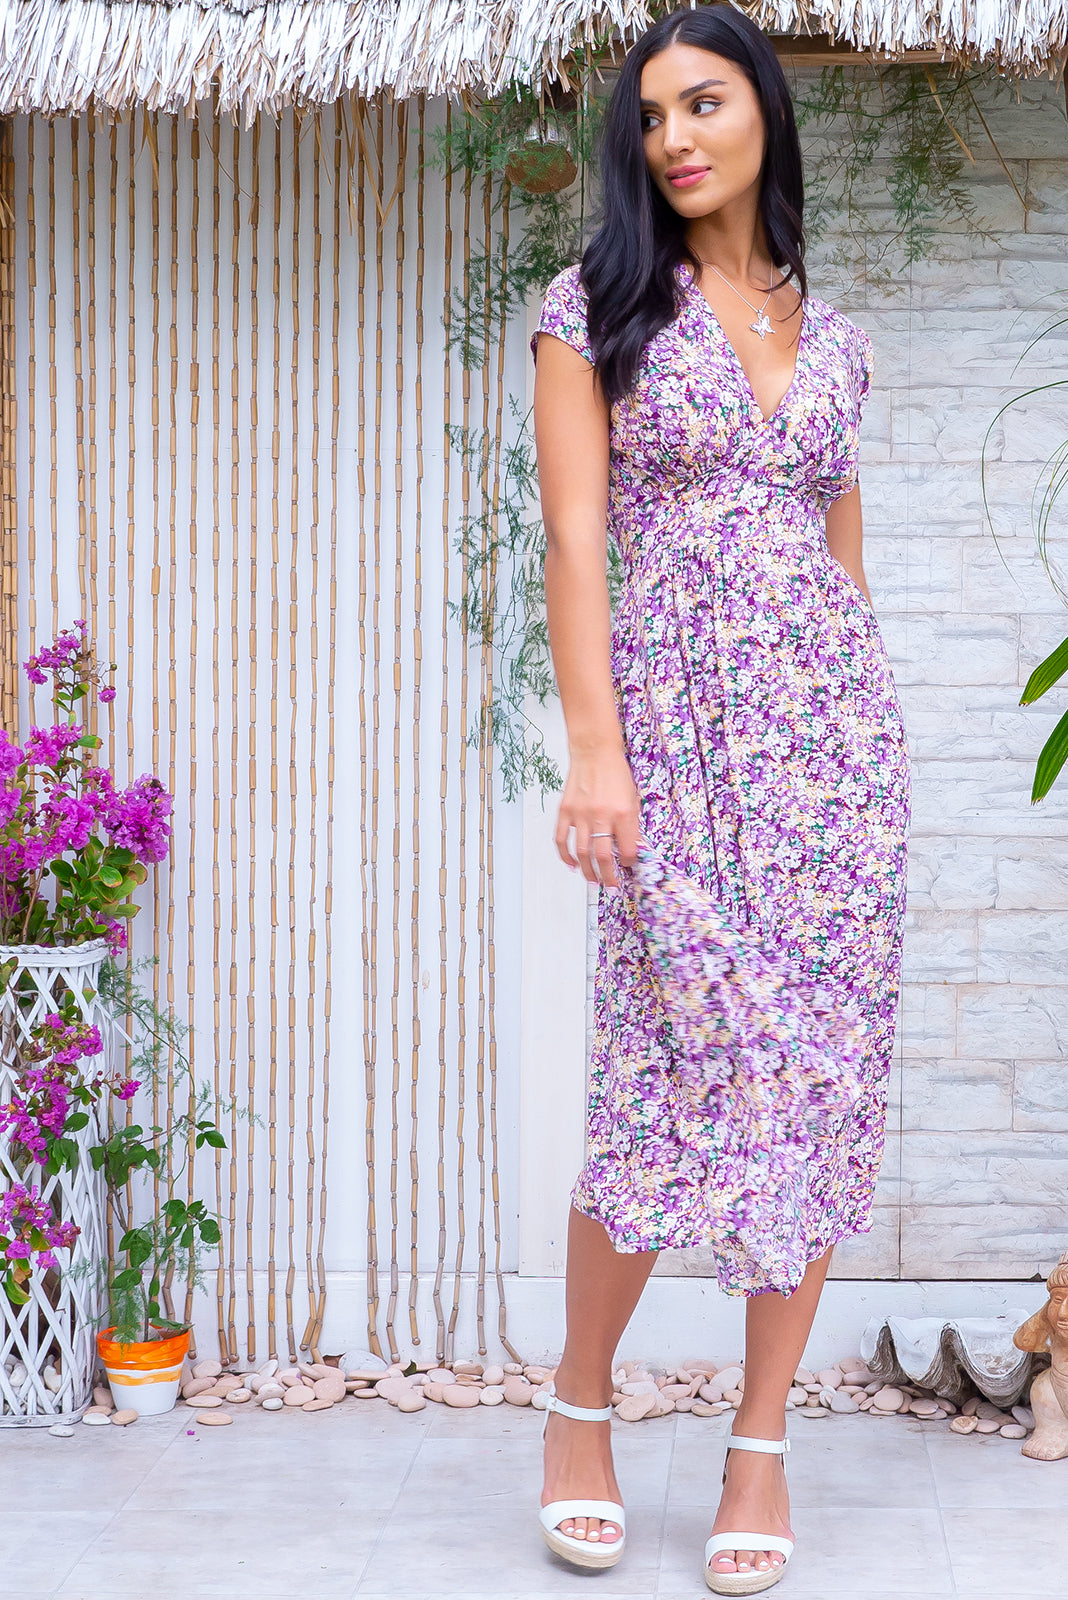 The Lizzie Pansy Purple Dress is such a romantic dress featuring fitted basque waist with gathered bust, waist features elastic shirring at back, petite side pockets and 100% rayon in vintage inspired pansy flowers print in purples, soft yellow and green.